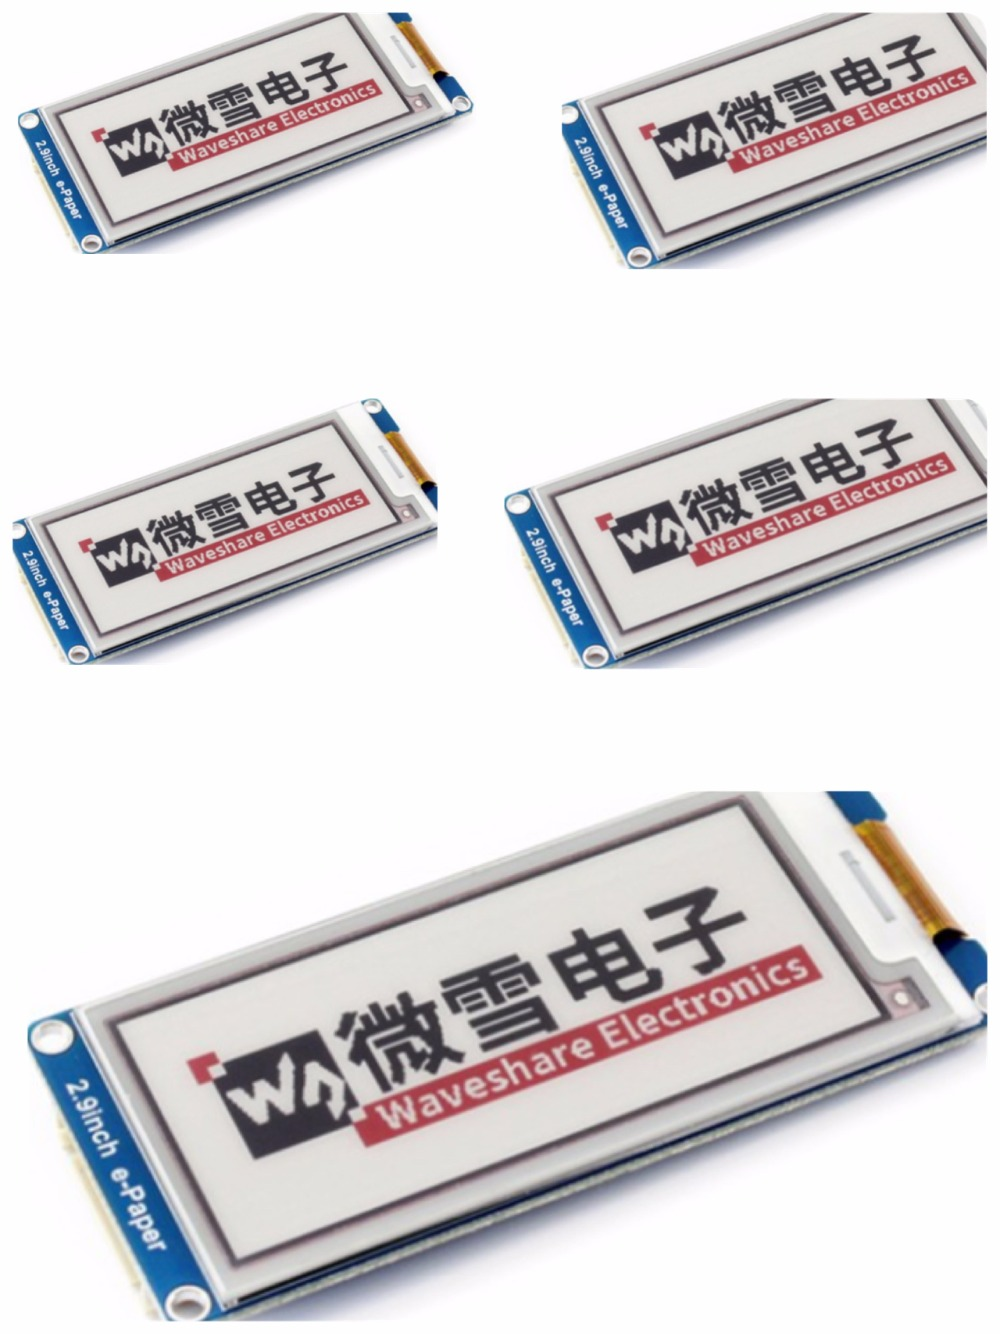 Parts 2.9inch E-Ink display module,2.9'' e-paper,296x128,Three Display color: red,black,white, SPI interface,No backlight, wide 4 2 e paper 400x300 4 2inch e ink display module display color black white no backlight wide angle spi interace